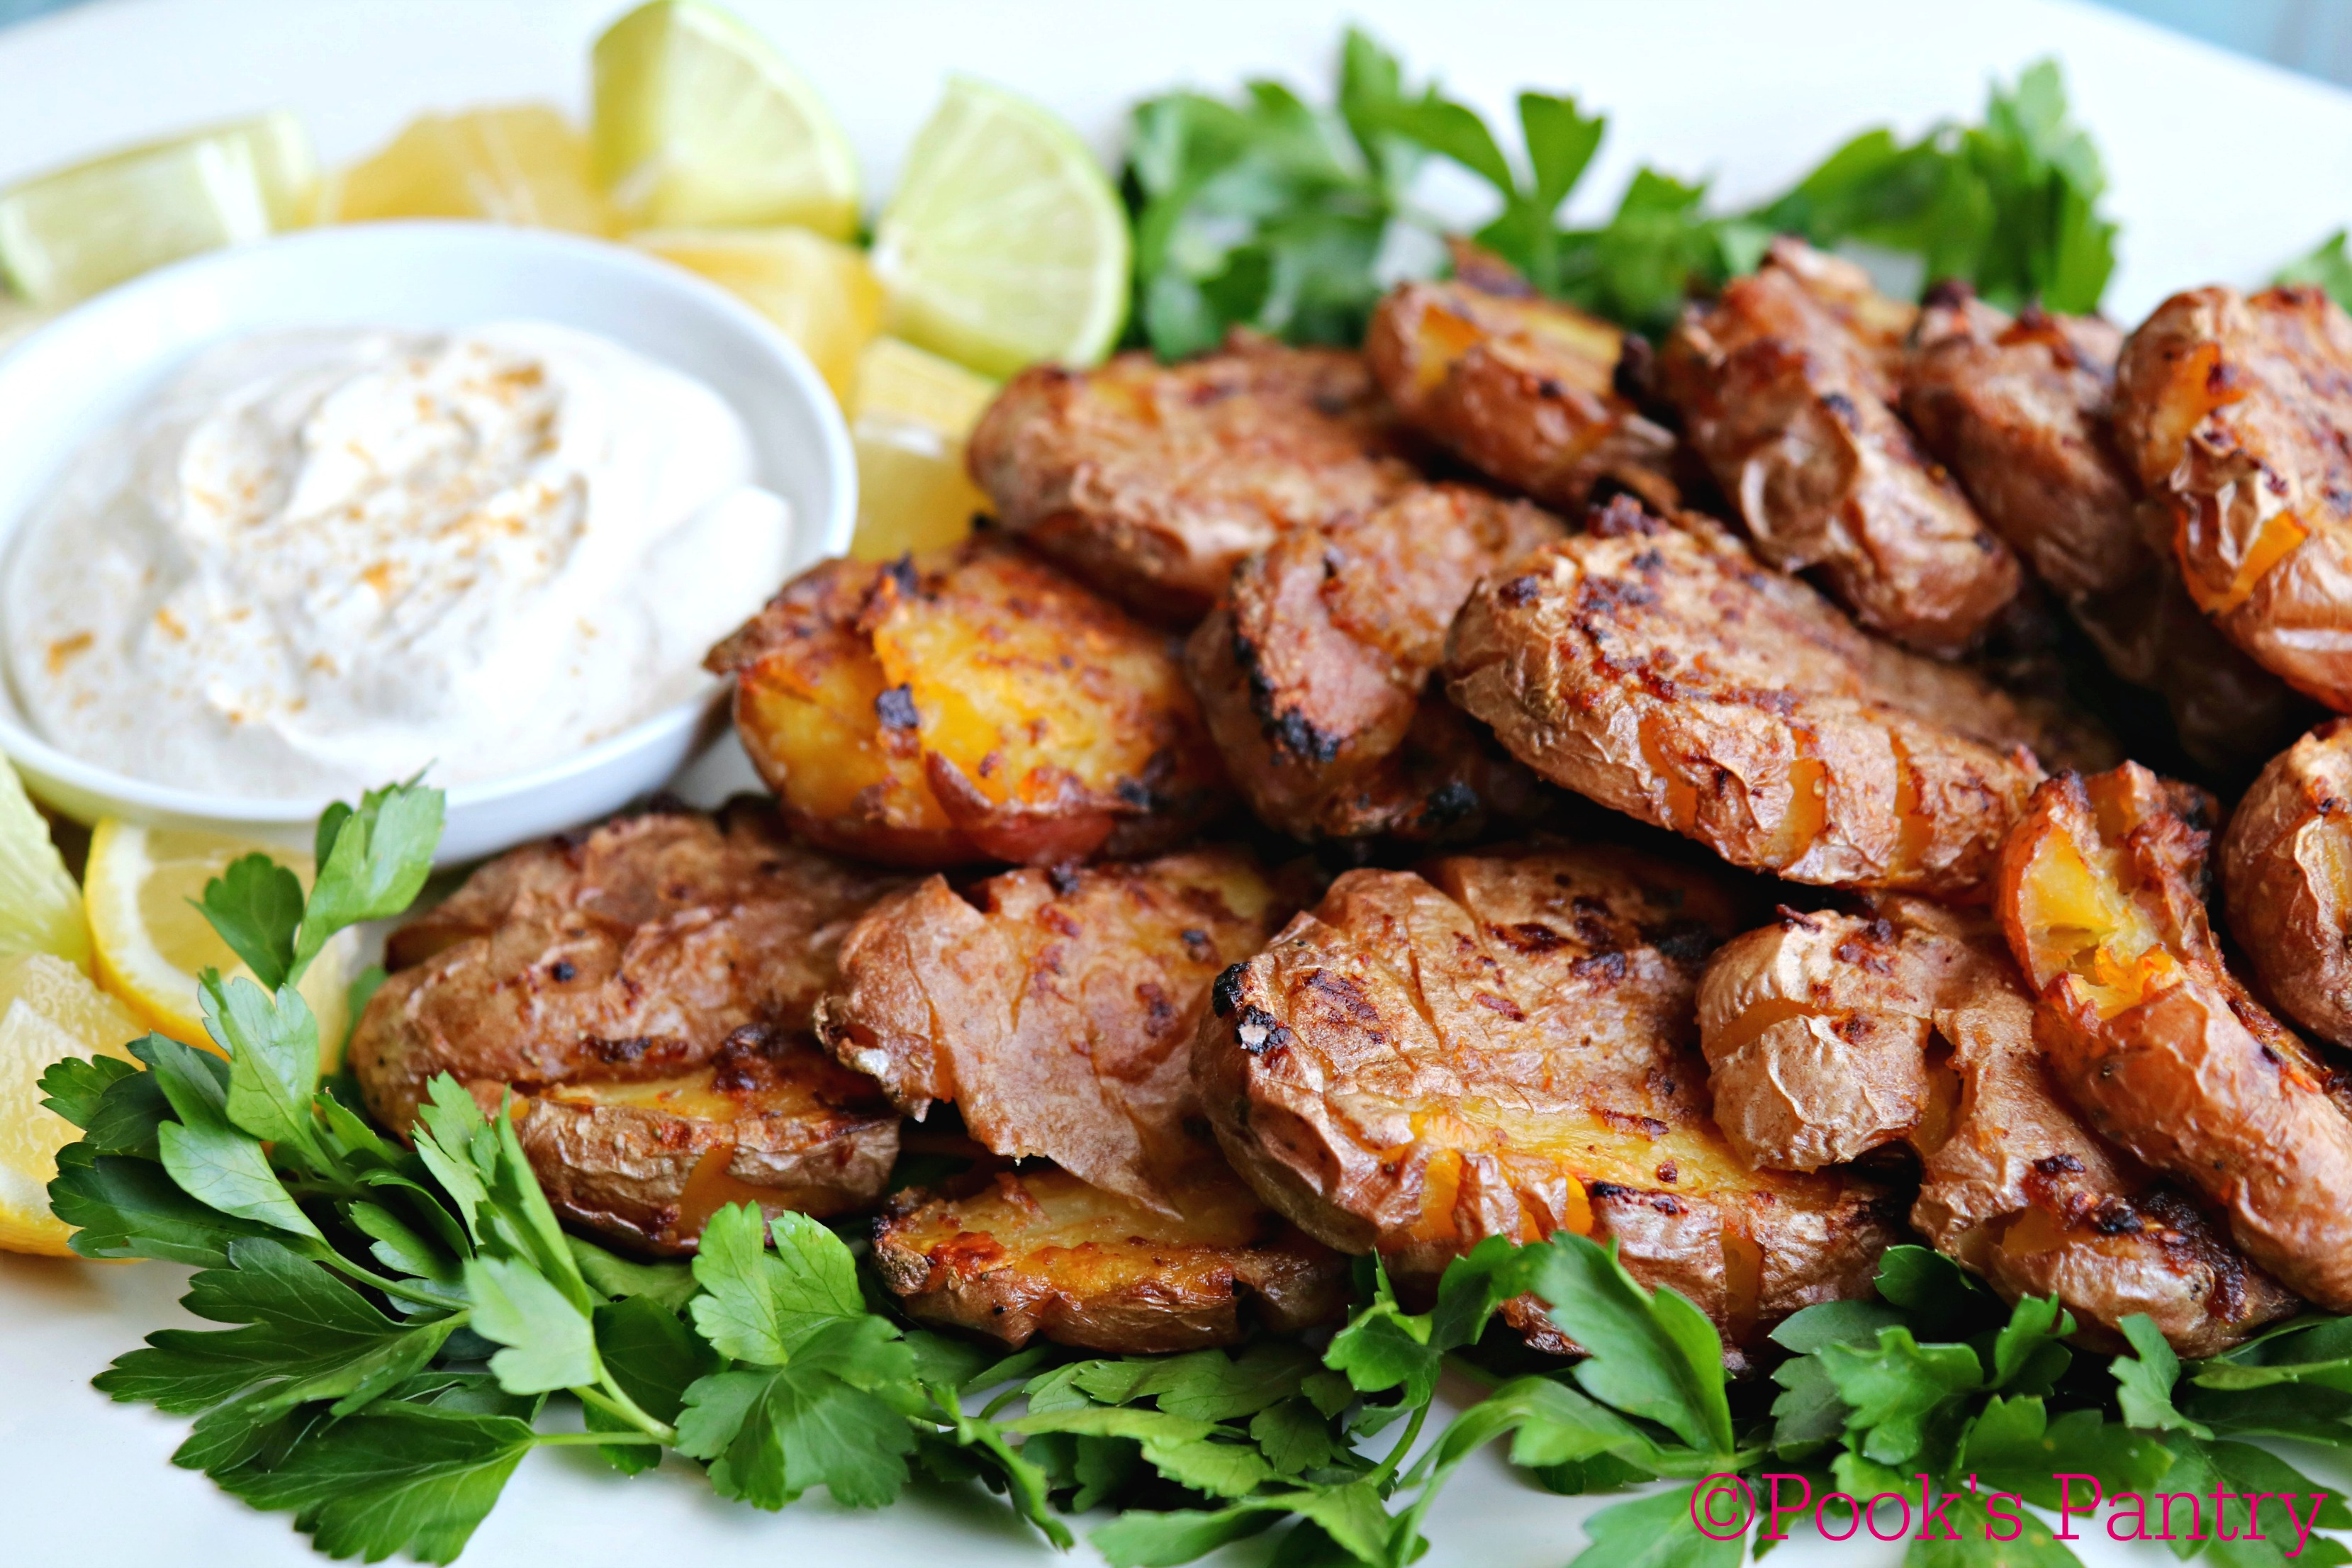 potatoes with sour cream, lemon and parsley on white platter